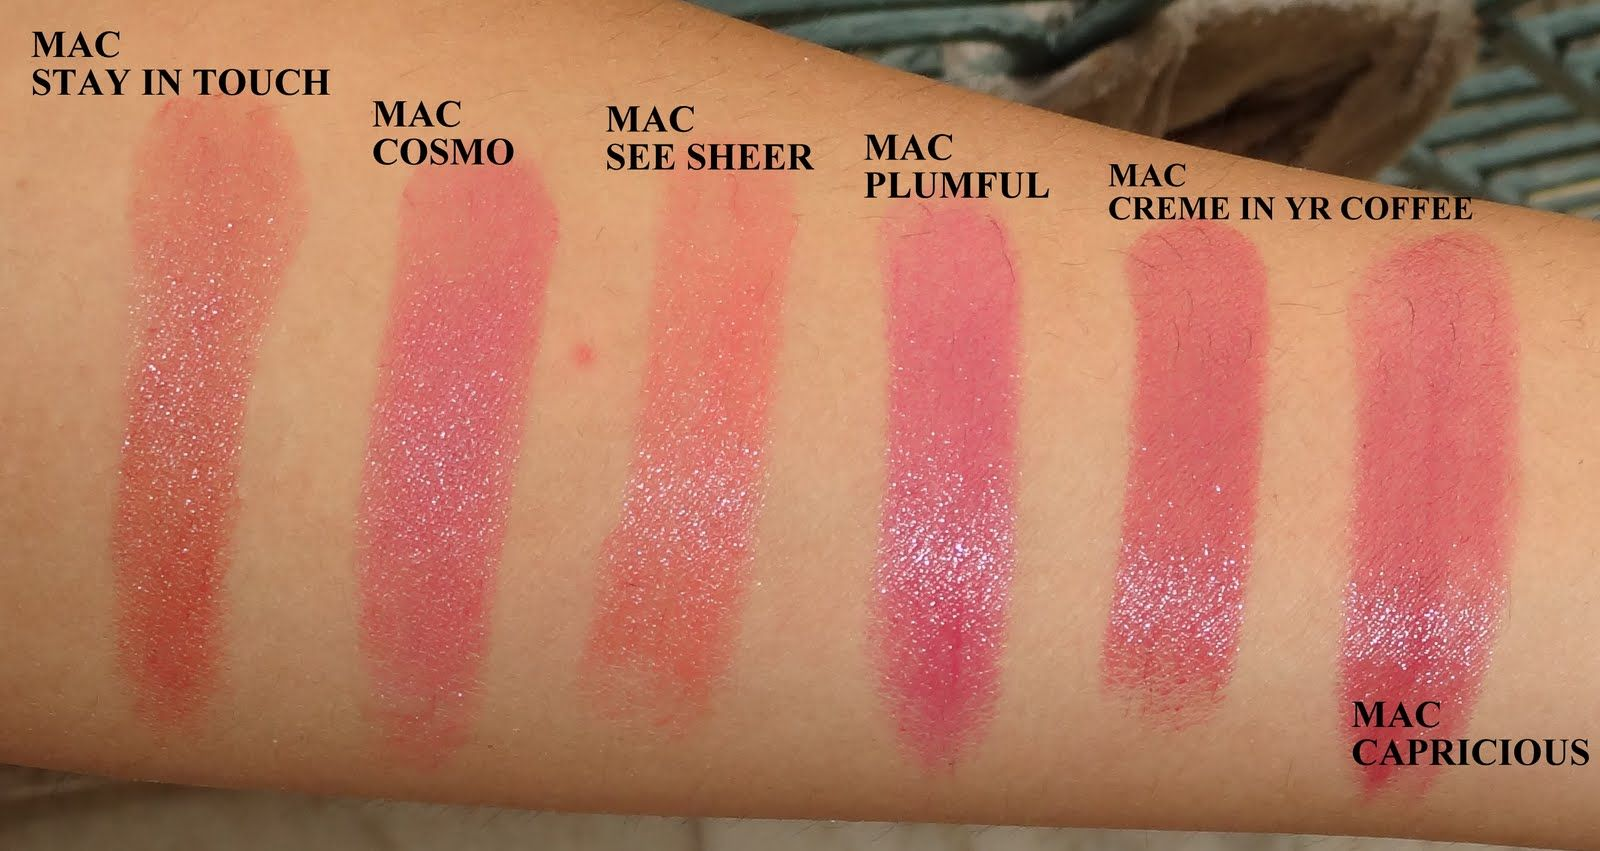 mac cosmo lipstick dupe - photo #10